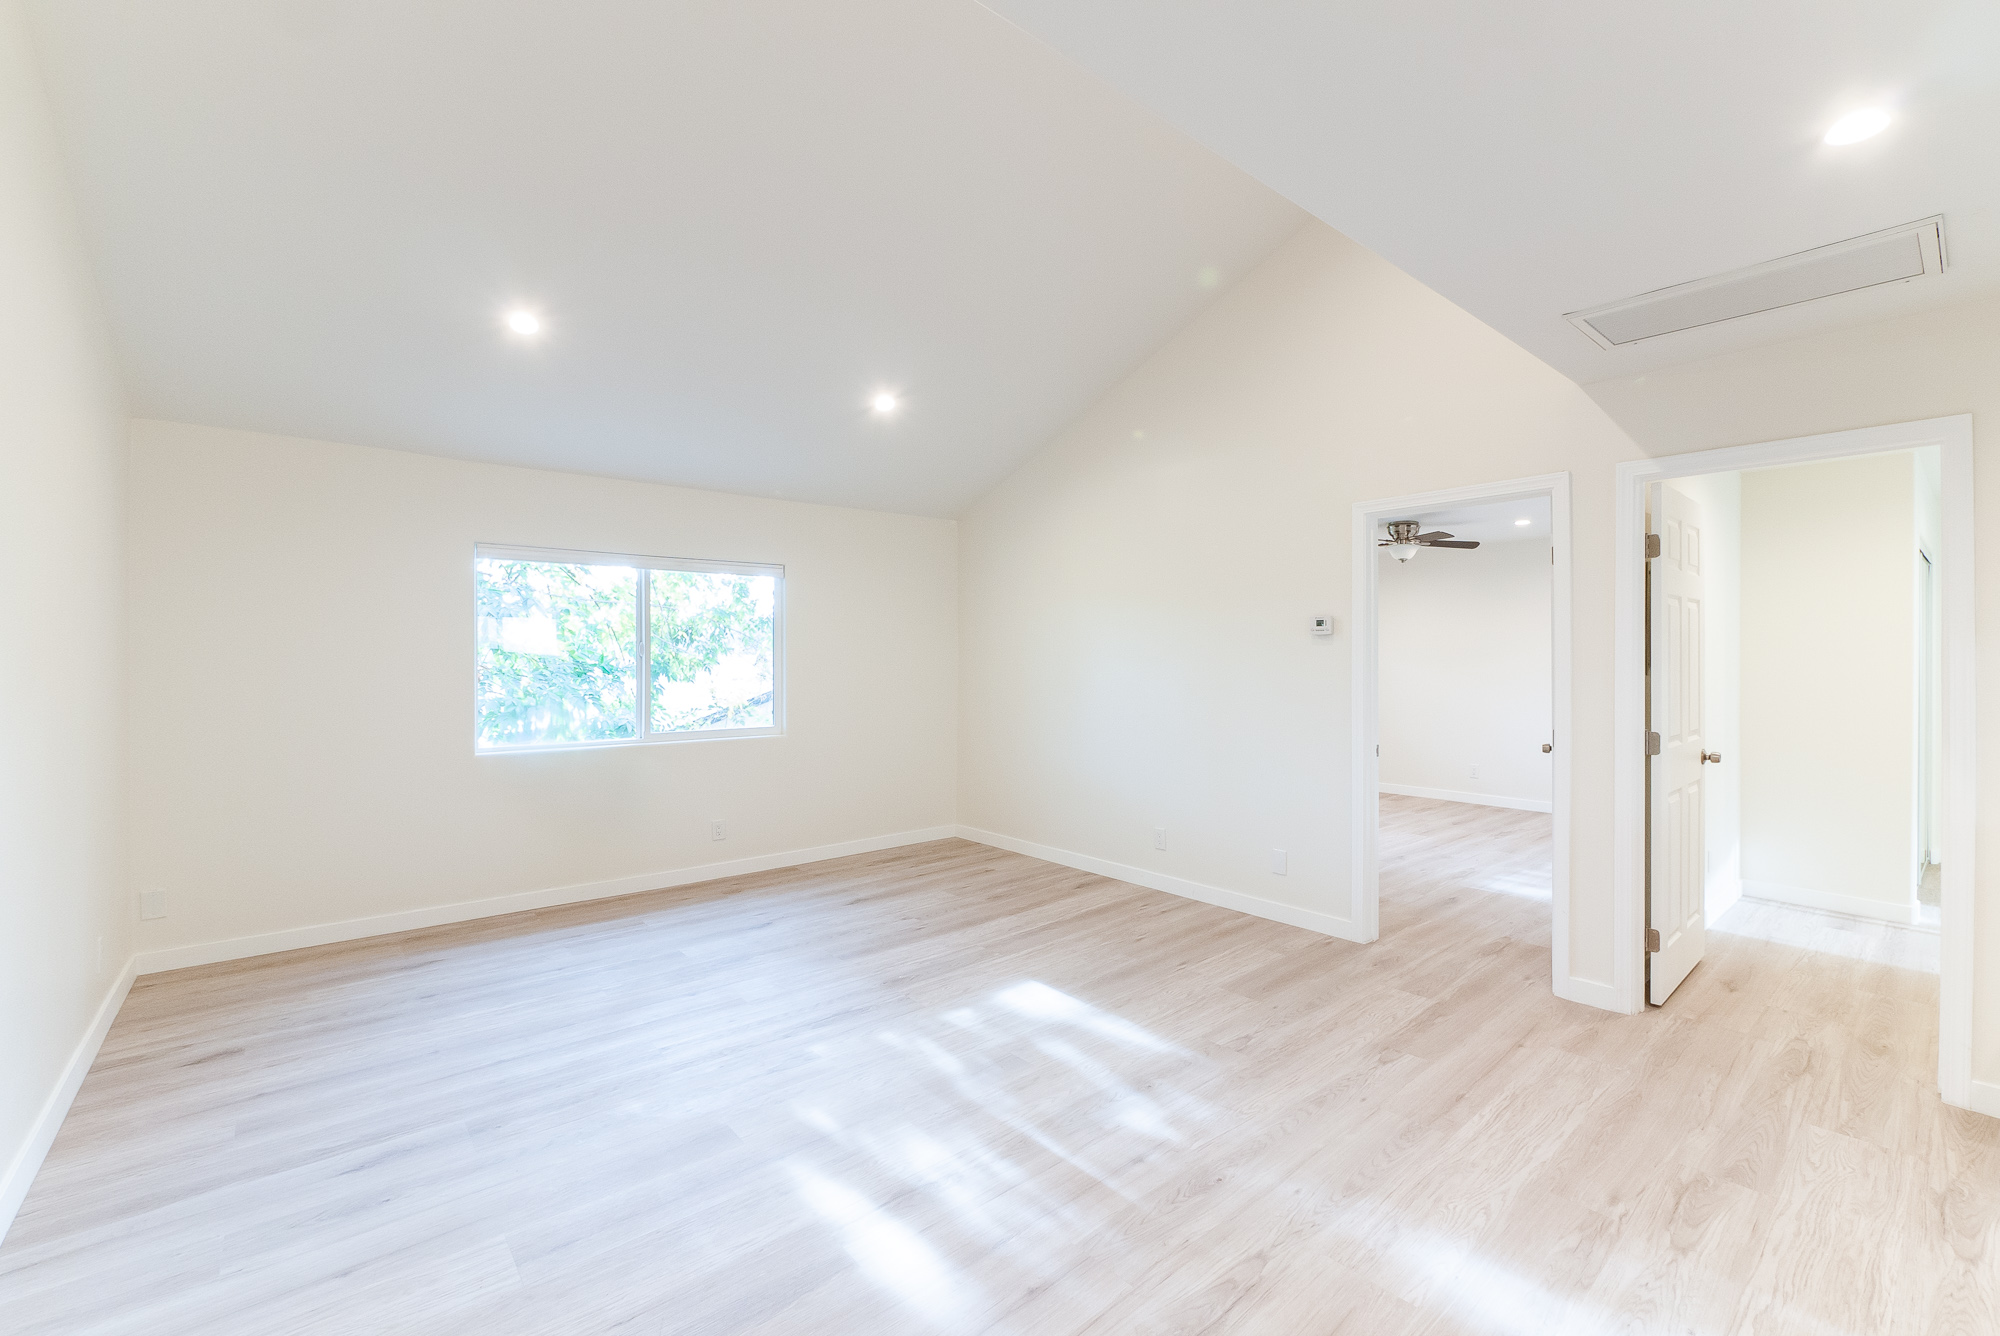 Fully Renovated 2 Bed/2 Bath w/ Brand new appliances, Vaulted Ceilings, Central A/C Heat, and 2 Gated Parking Spaces! Minutes from all the action!